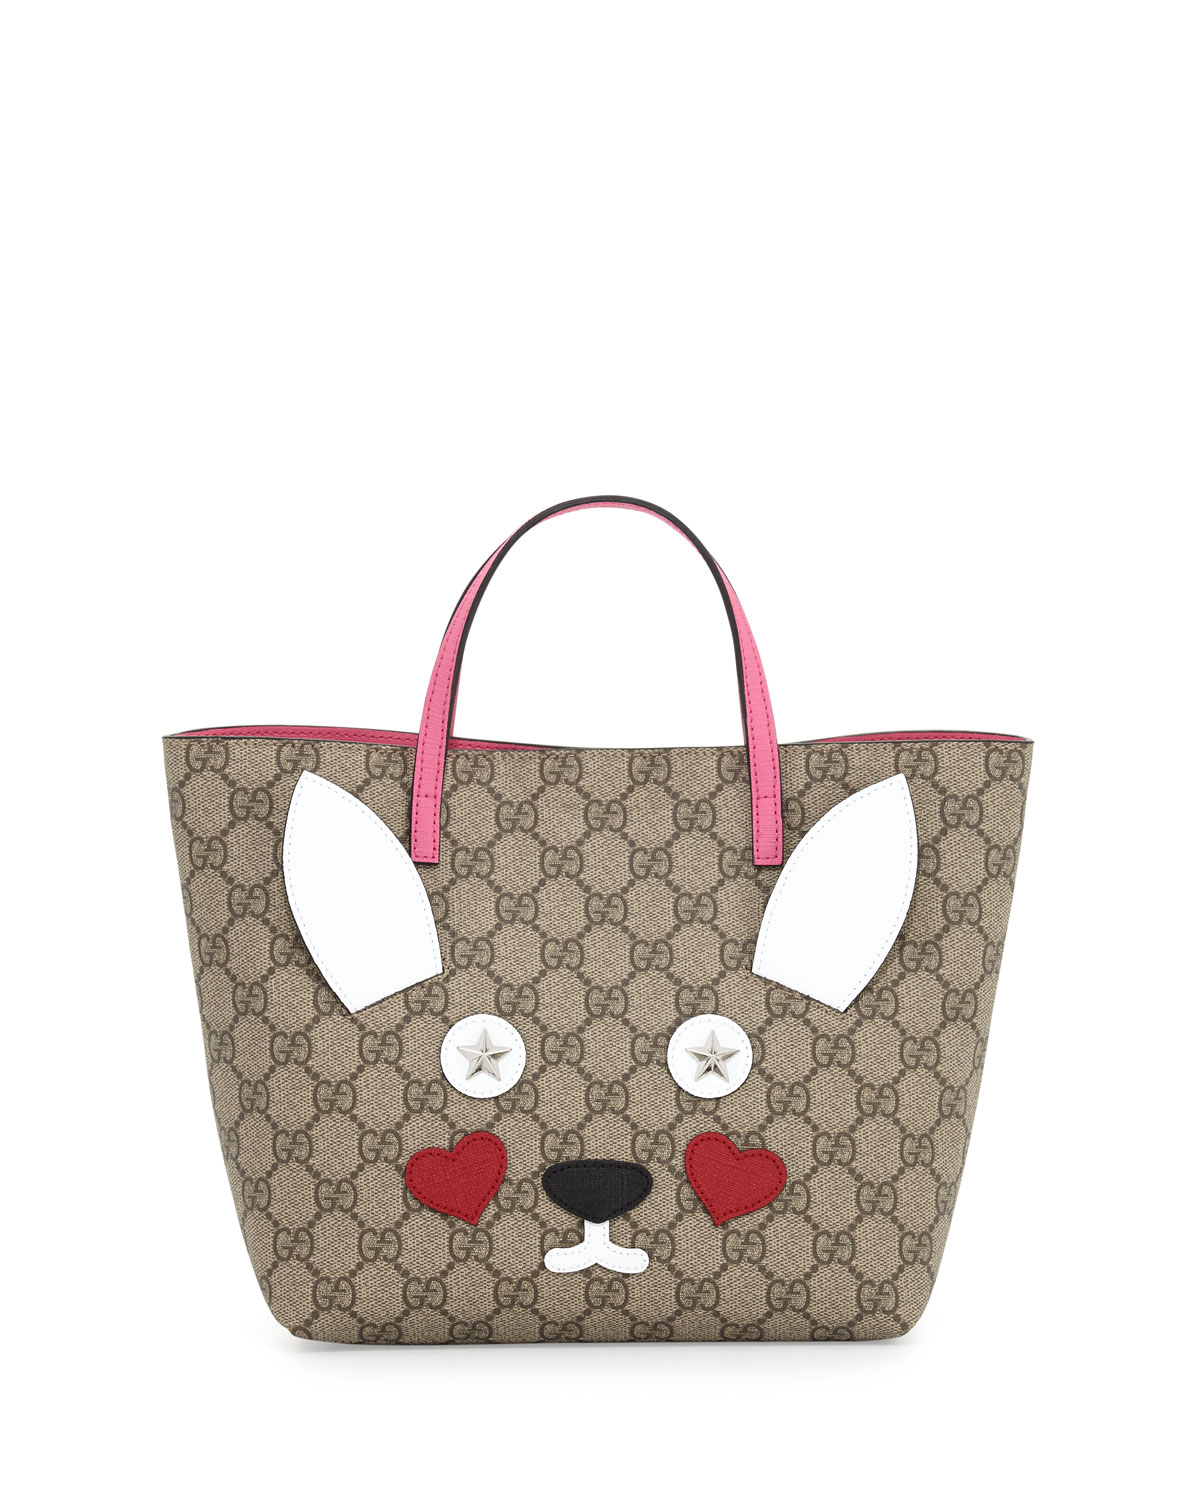 527b36030255 Gucci Girls' GG Supreme Rabbit Tote Bag, Multicolor | Neiman Marcus